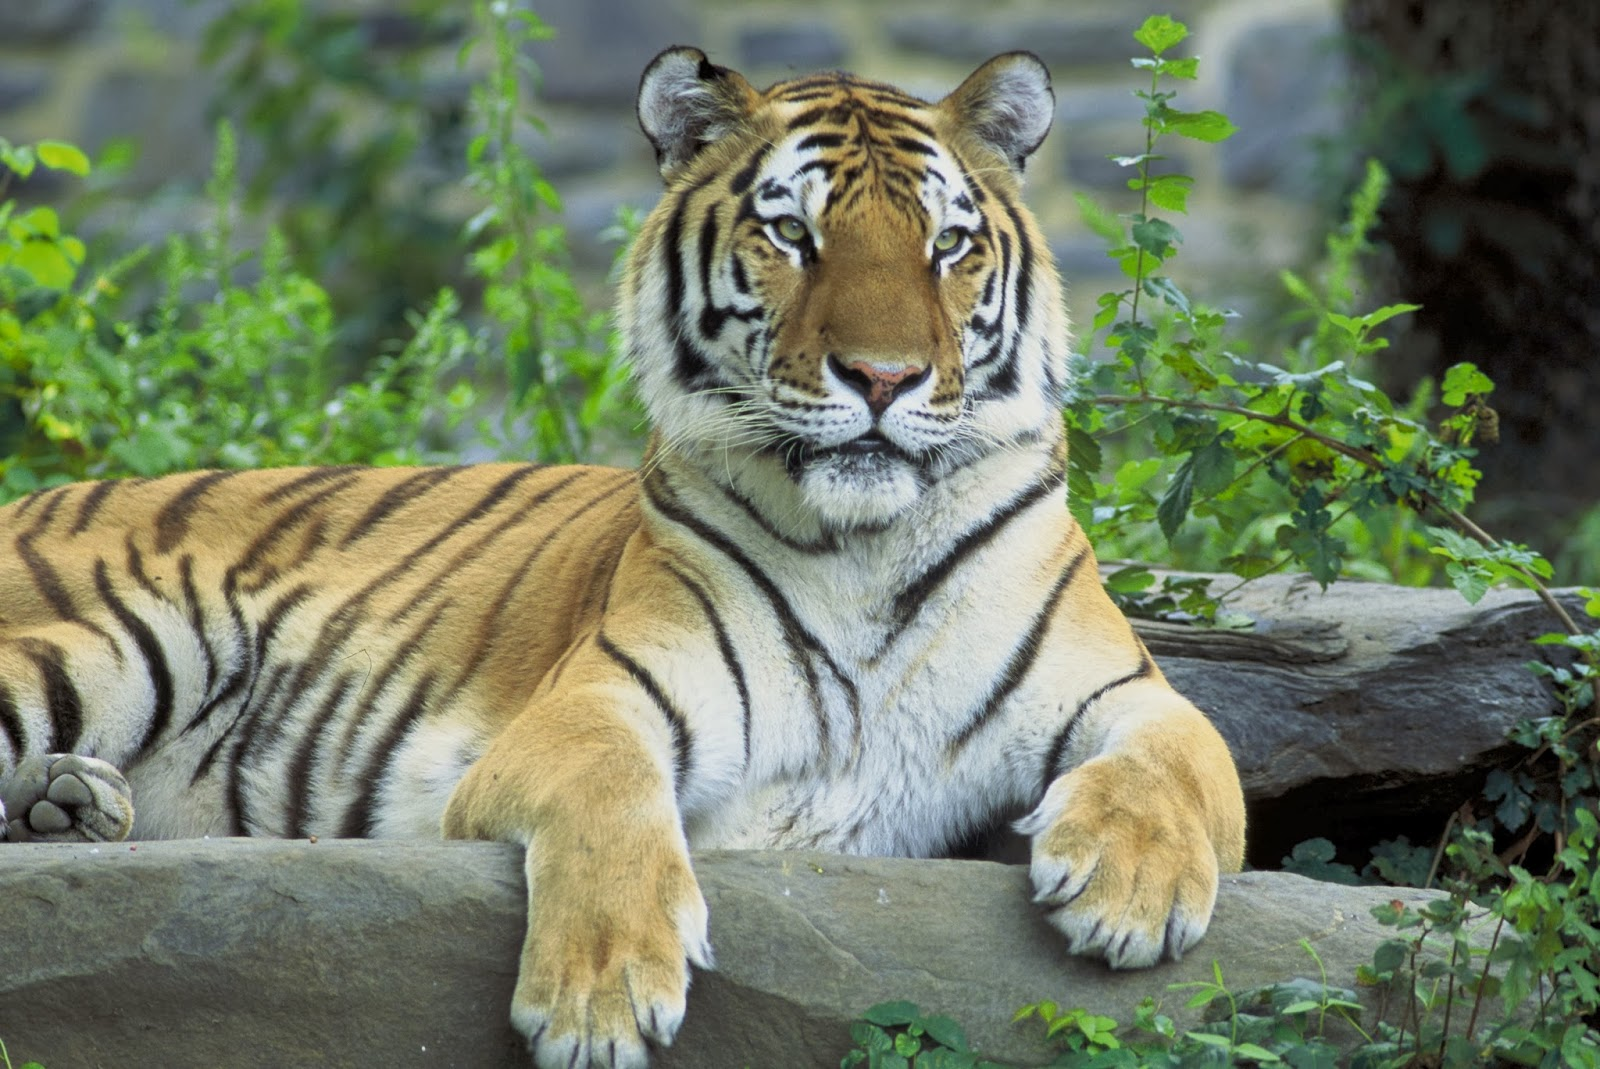 All new wallpaper tiger hd wallpapers - Tiger hd wallpaper for pc ...